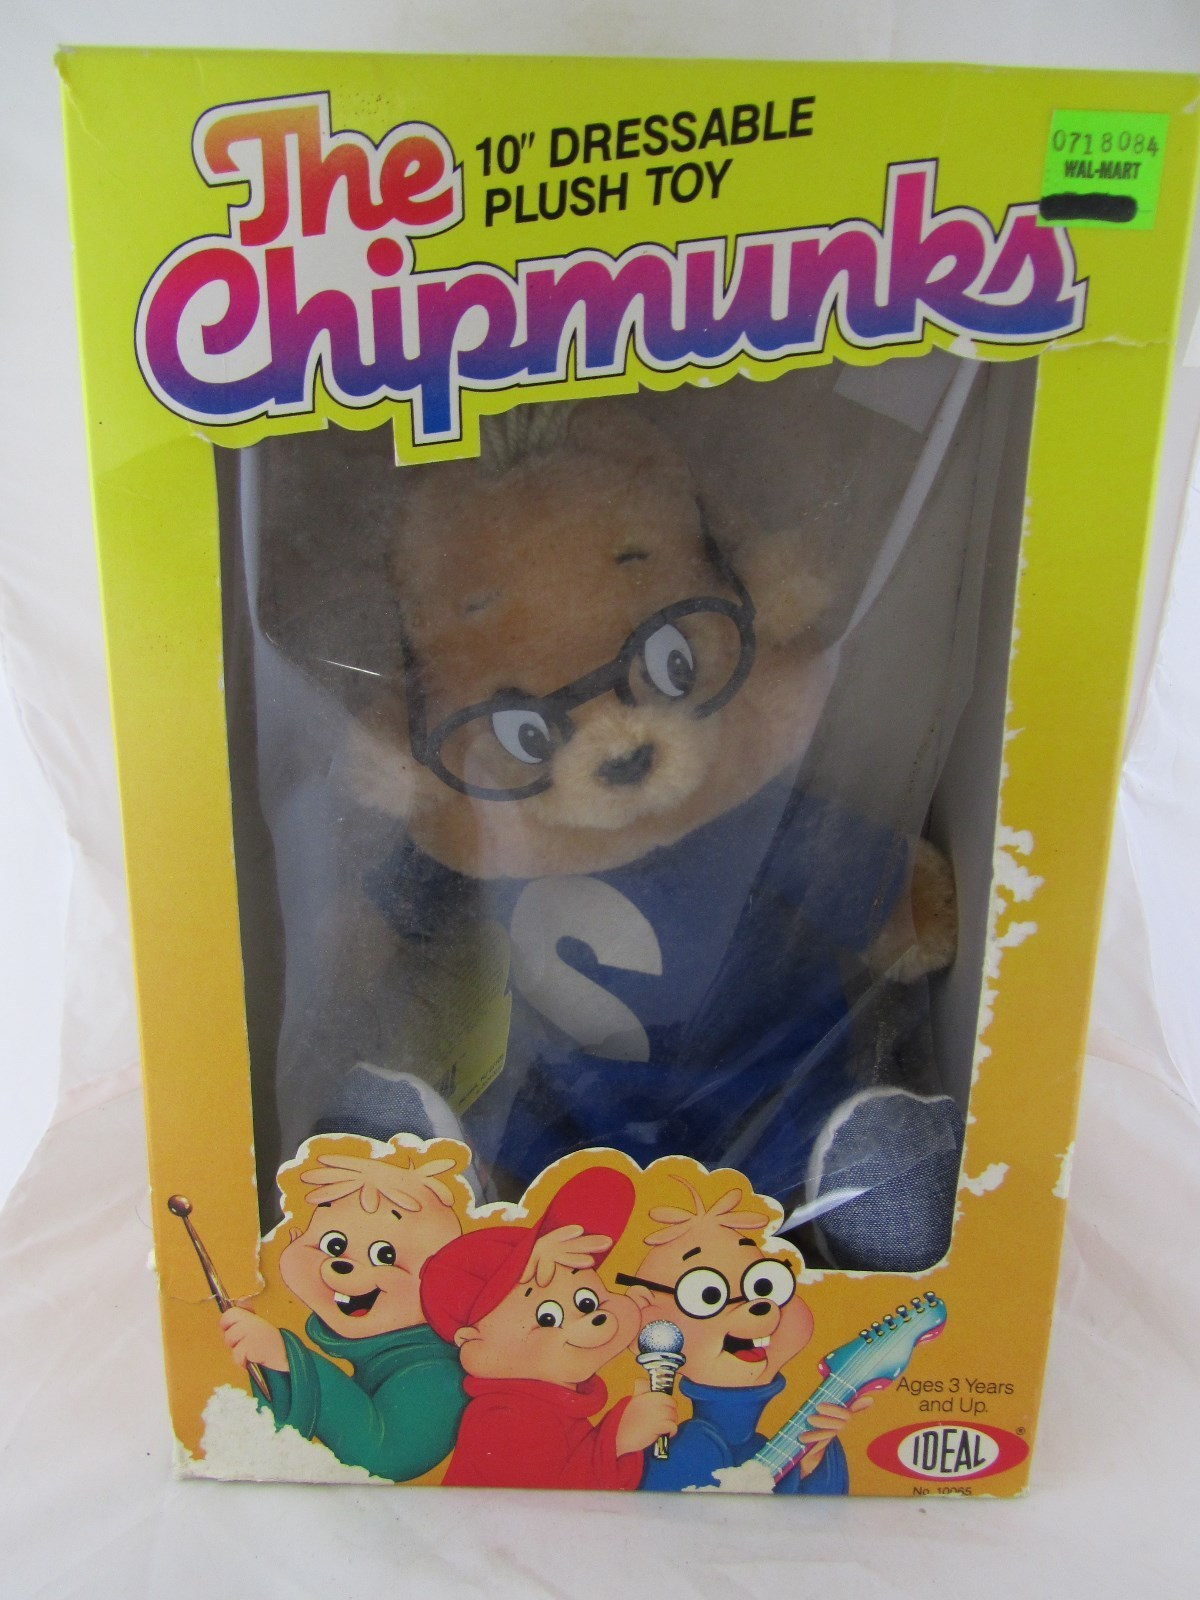 Consider, that alvin and the chipmunks plush toys at target phrase matchless